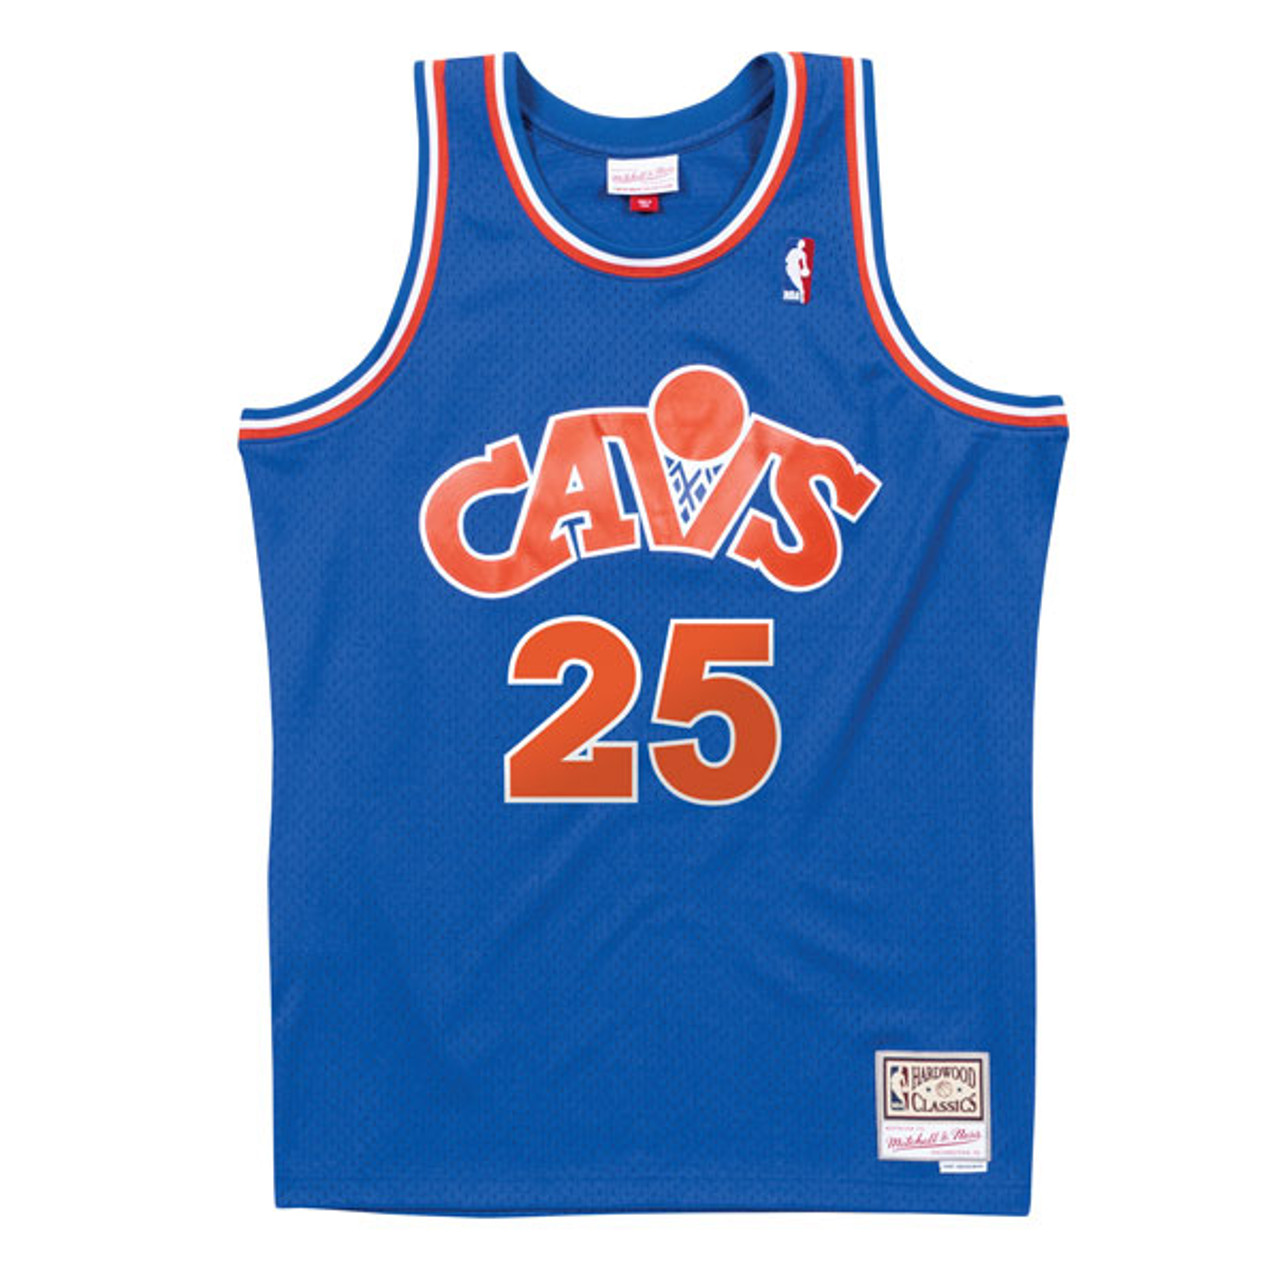 Retro Jerseys Mark Price Retro Swingman Jersey